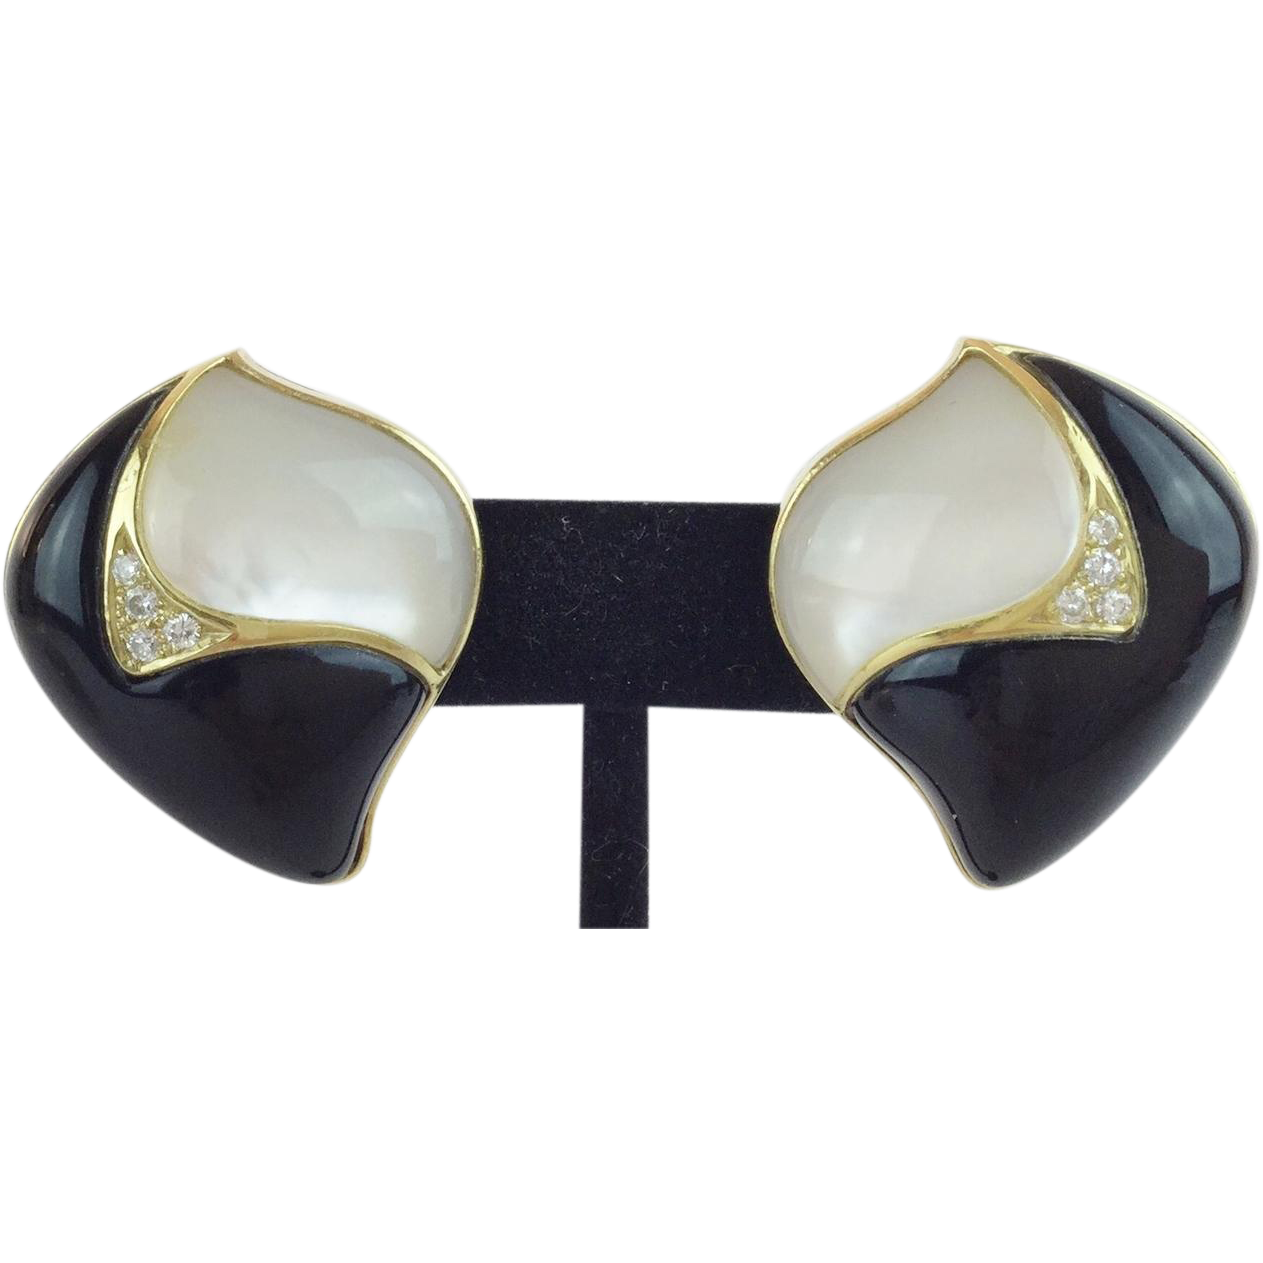 "Mother of Pearl and Black Onyx Earrings  Framed in 14KARAT Yellow Gold  ""MAGNIFICENT"""